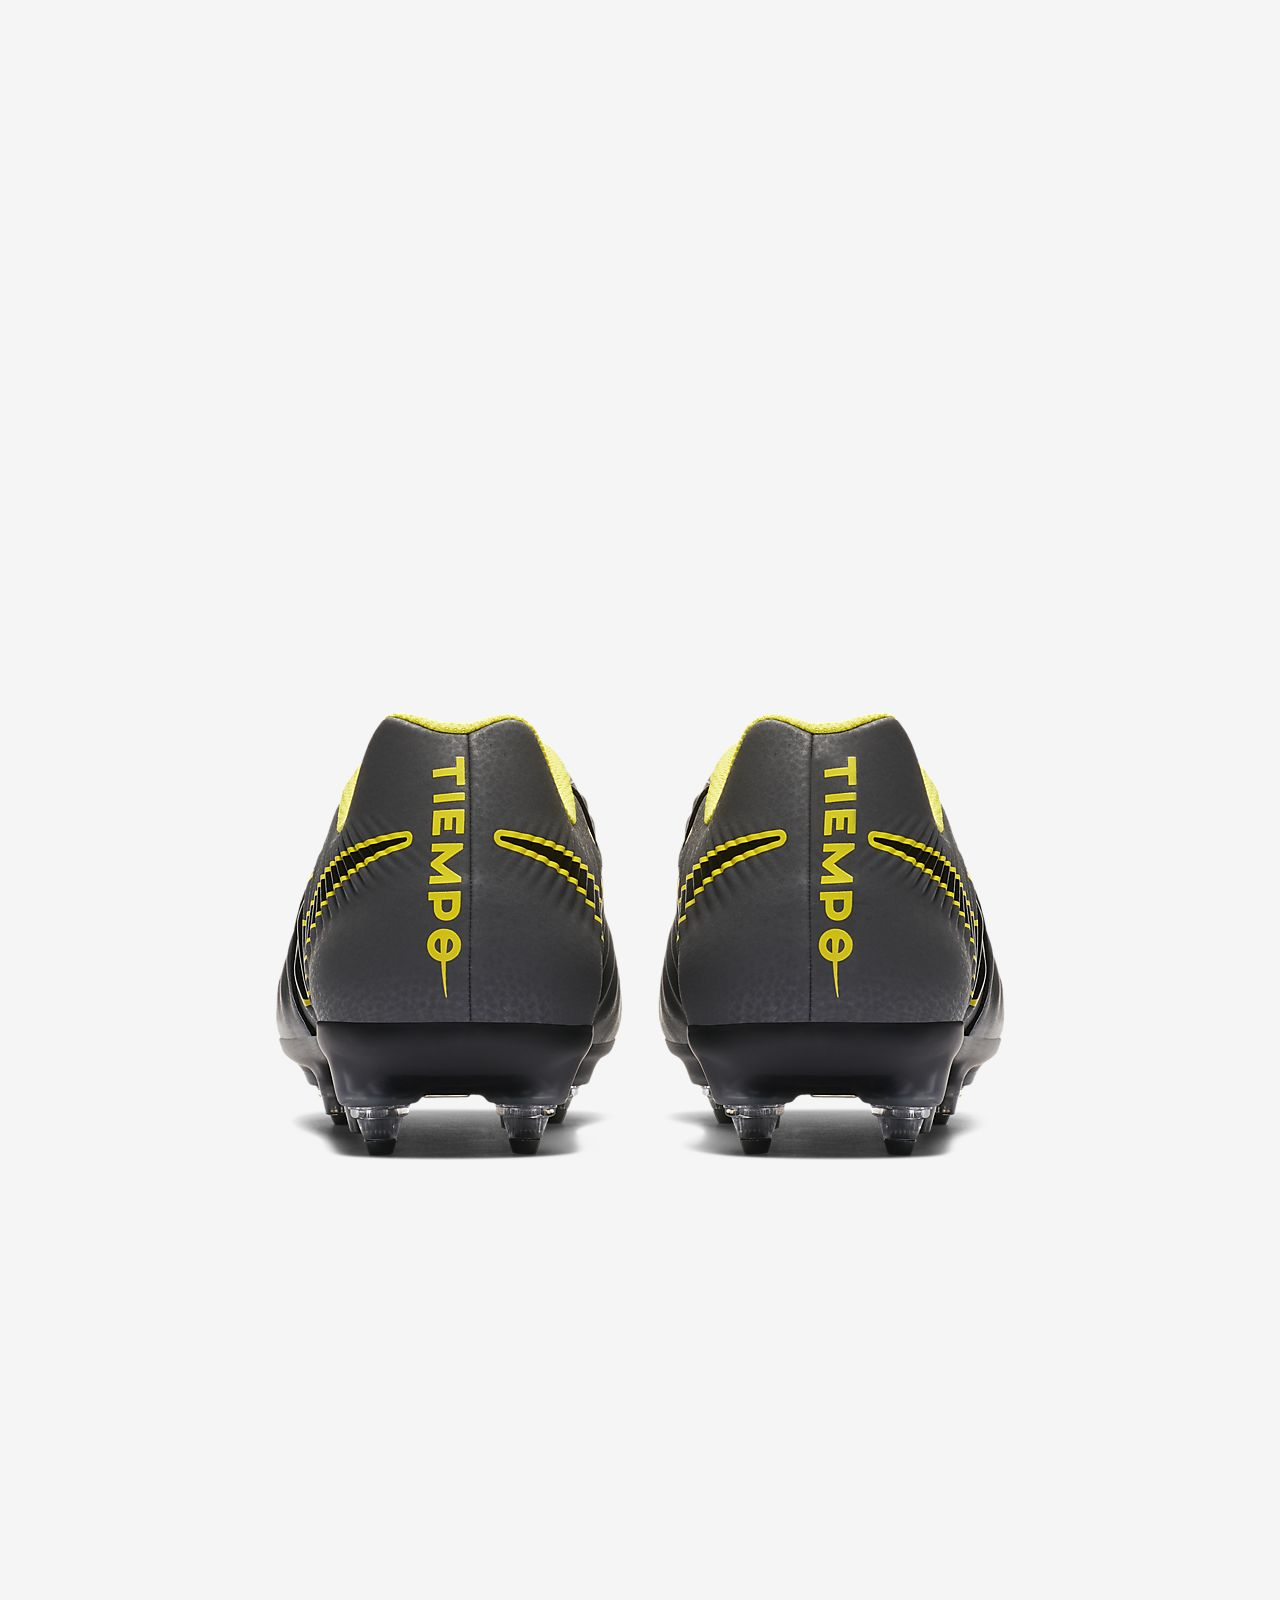 new style 2d61e 47769 ... Nike Legend 7 Academy SG-Pro Anti-Clog Traction Soft-Ground Pro Football